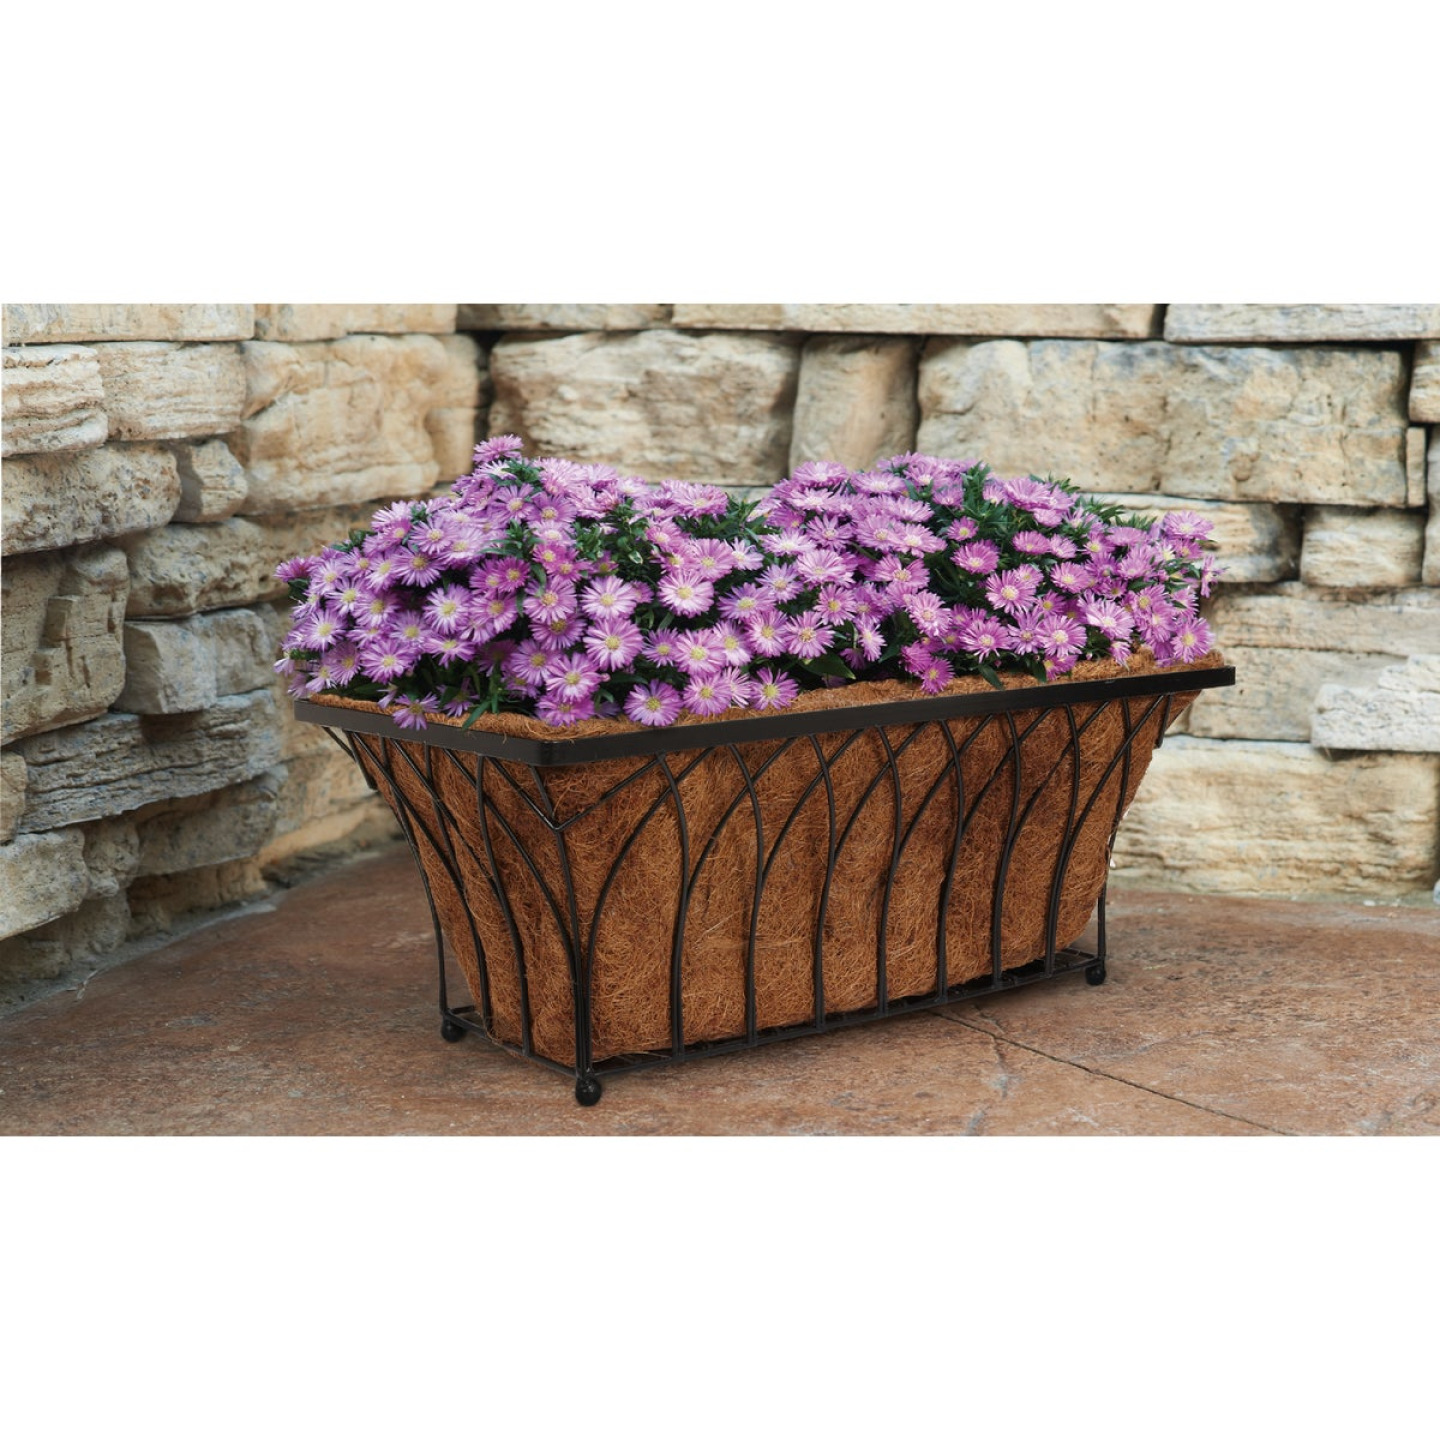 Best Garden 11 In. H x 22 In. Steel Rod Black Planter Image 2